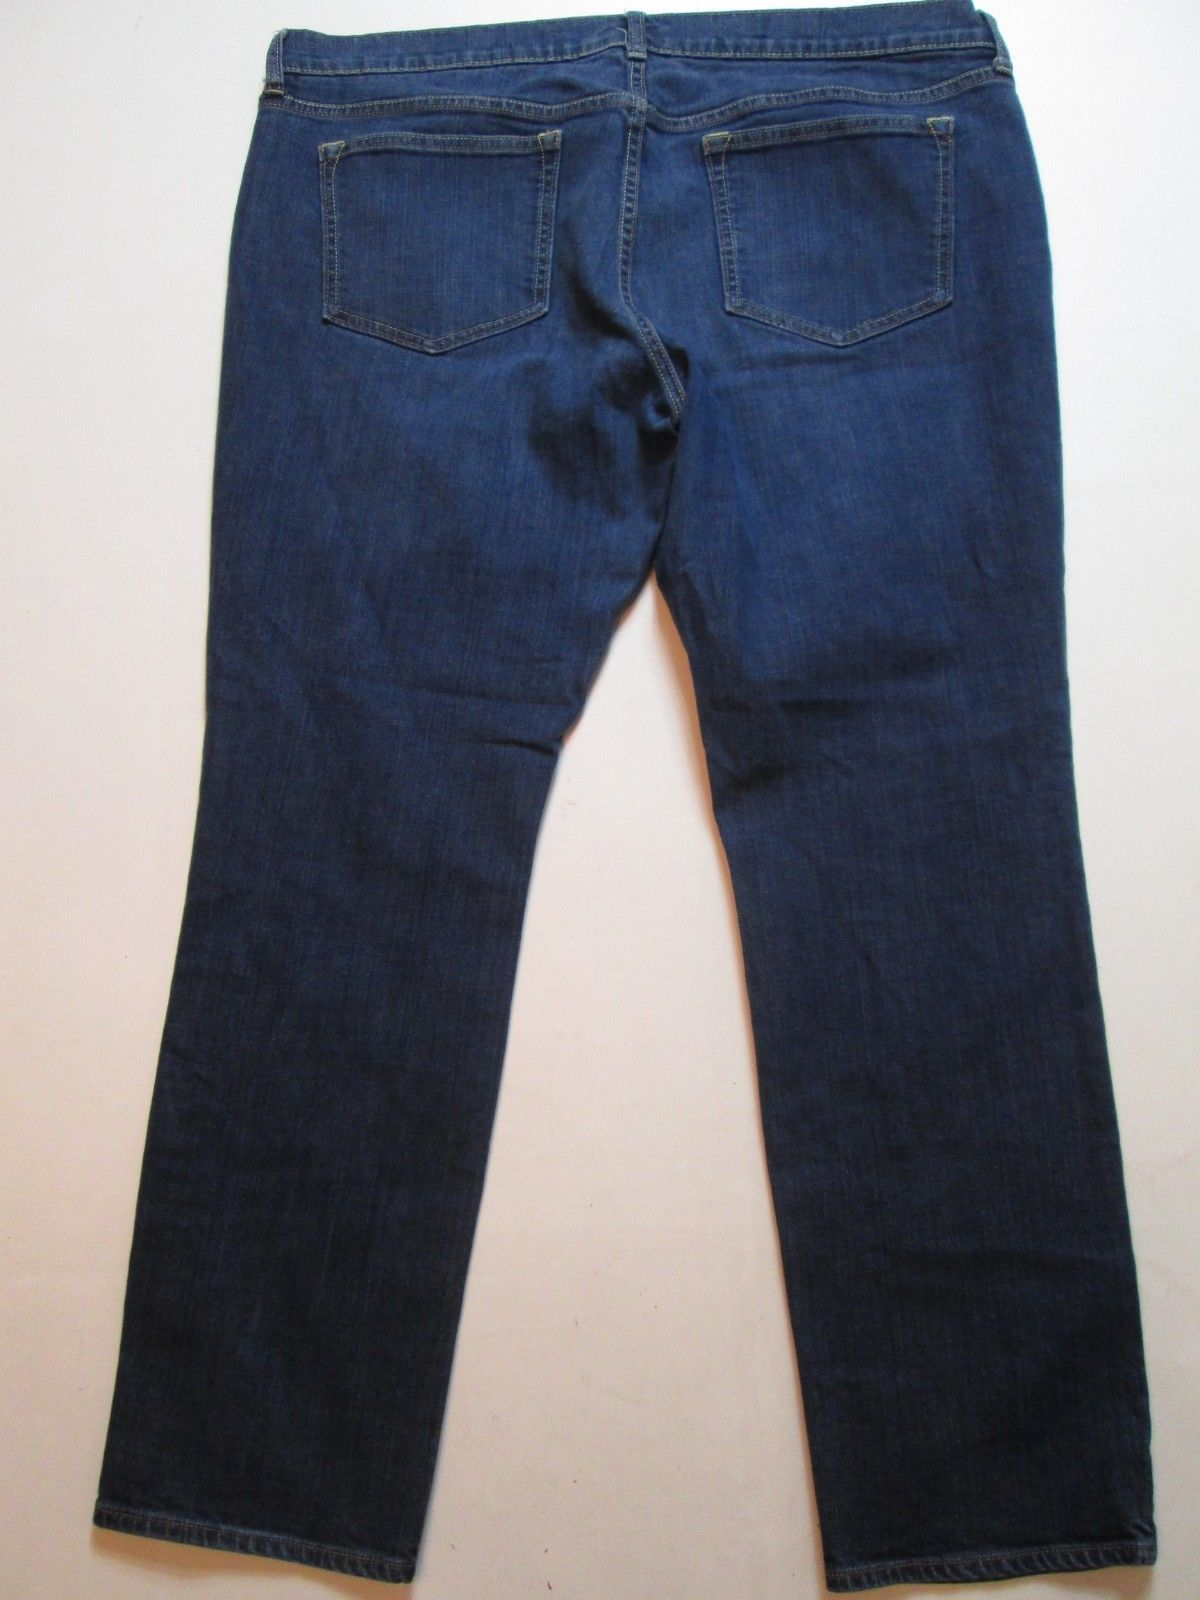 Old Navy Women Jeans Size 18 Regular Inseam 29.5 #O1